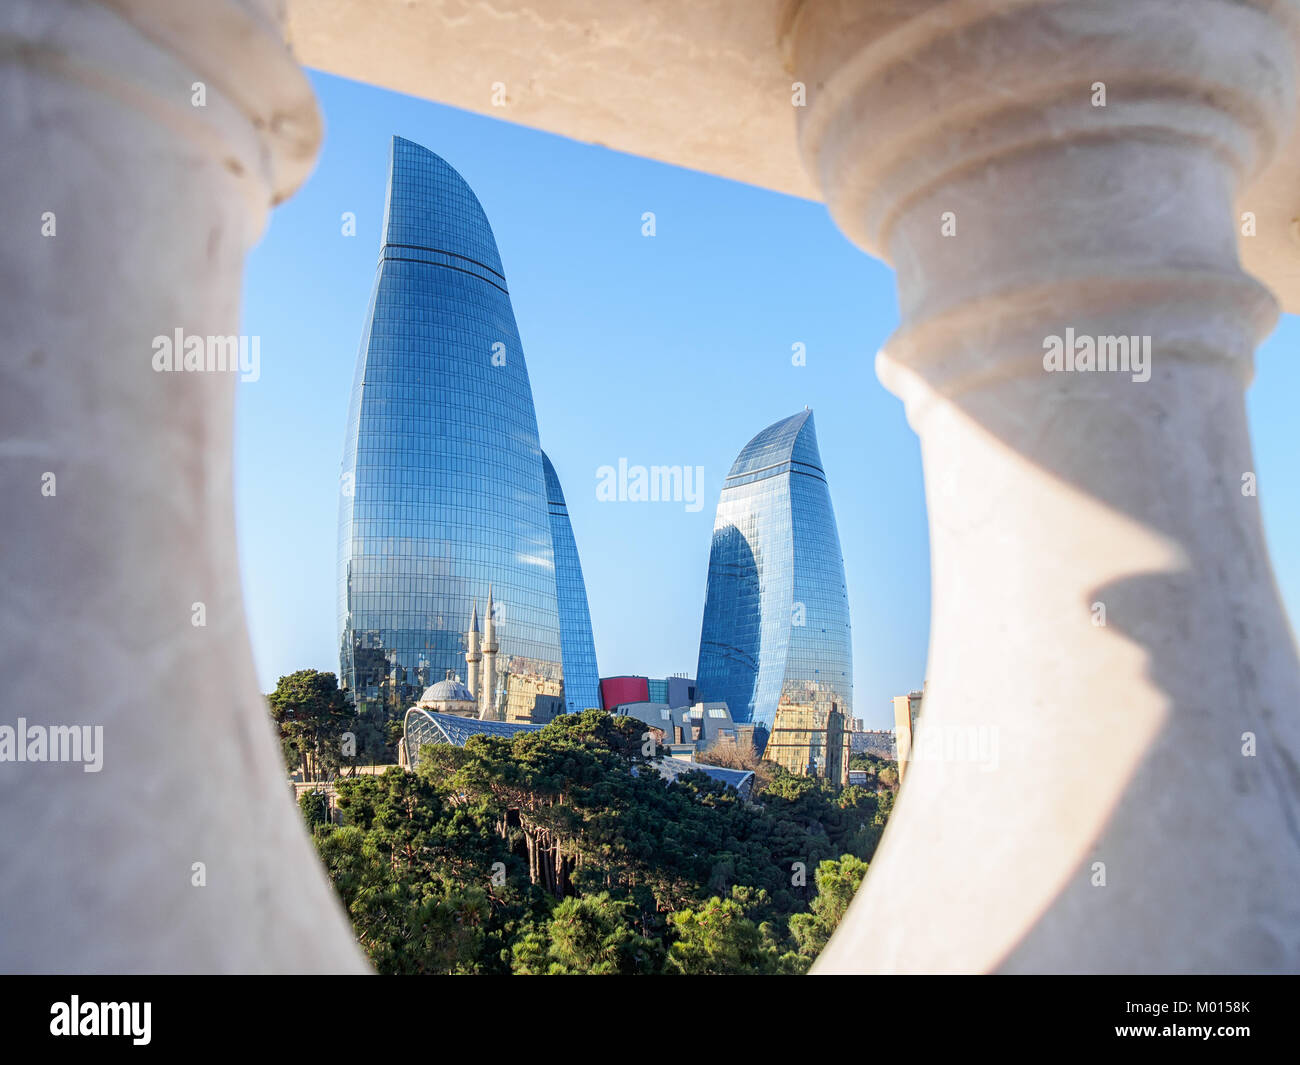 Baku Azerbaijan December 27 2017 Modern Architecture Of Baku City